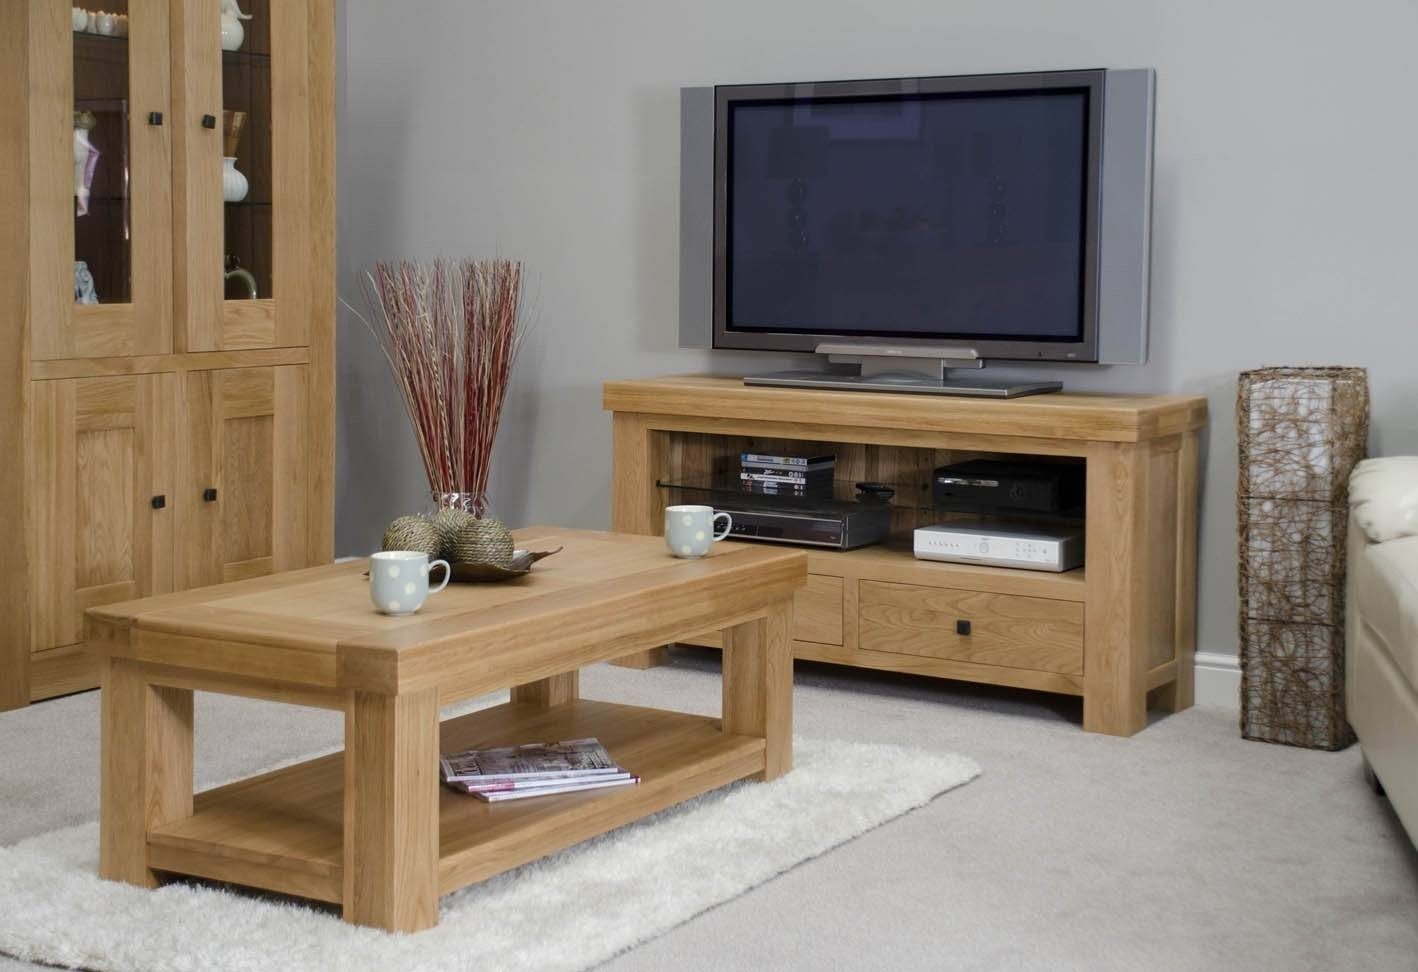 French Bordeaux Oak Large Coffee Table | Oak Furniture Uk within Bordeaux Coffee Tables (Image 15 of 30)